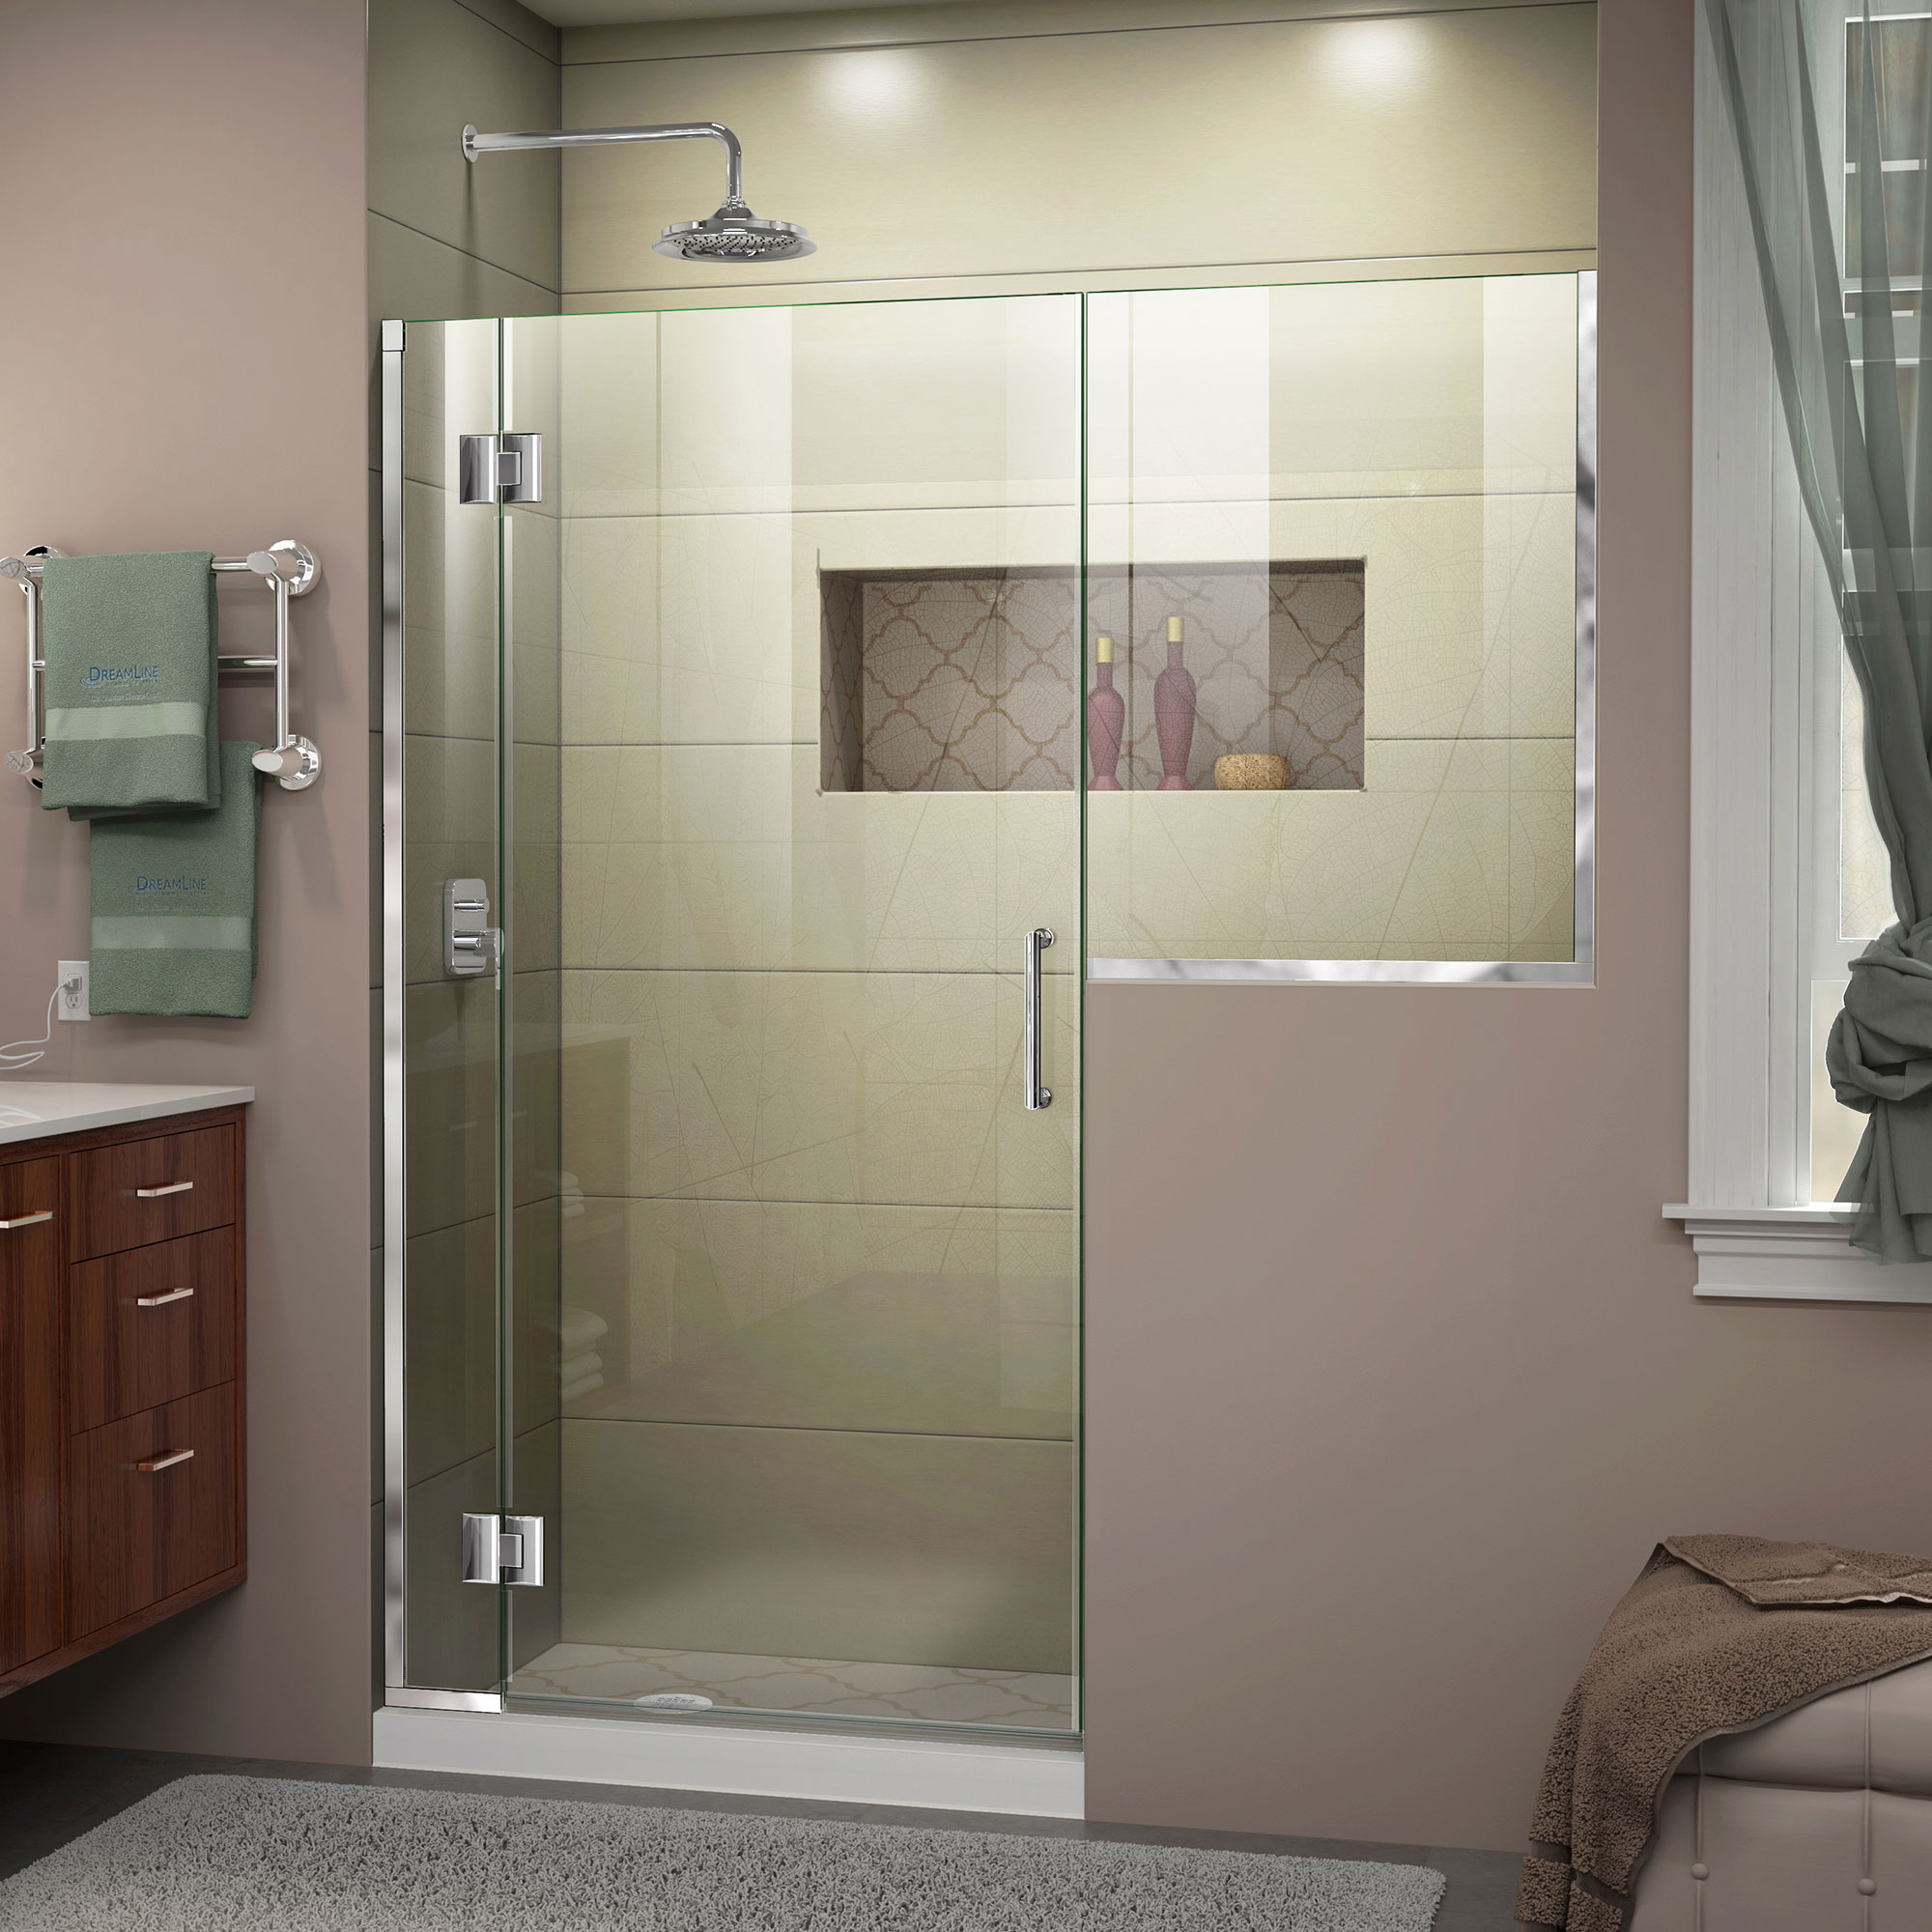 DreamLine Unidoor-X 65-65 1/2 in. W x 72 in. H Frameless Hinged Shower Door in Chrome